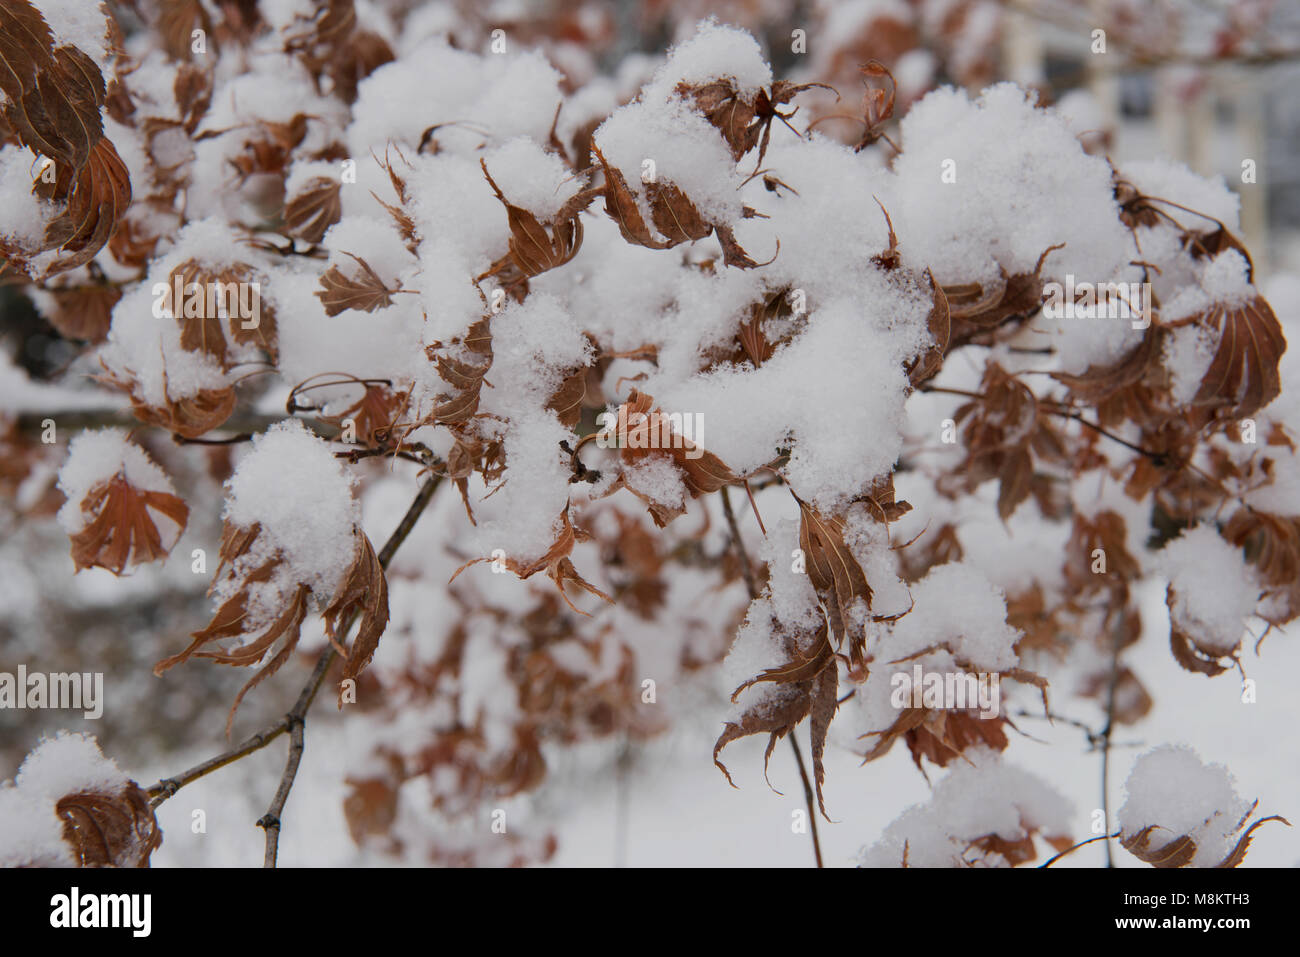 Snow laden leaves - Stock Image